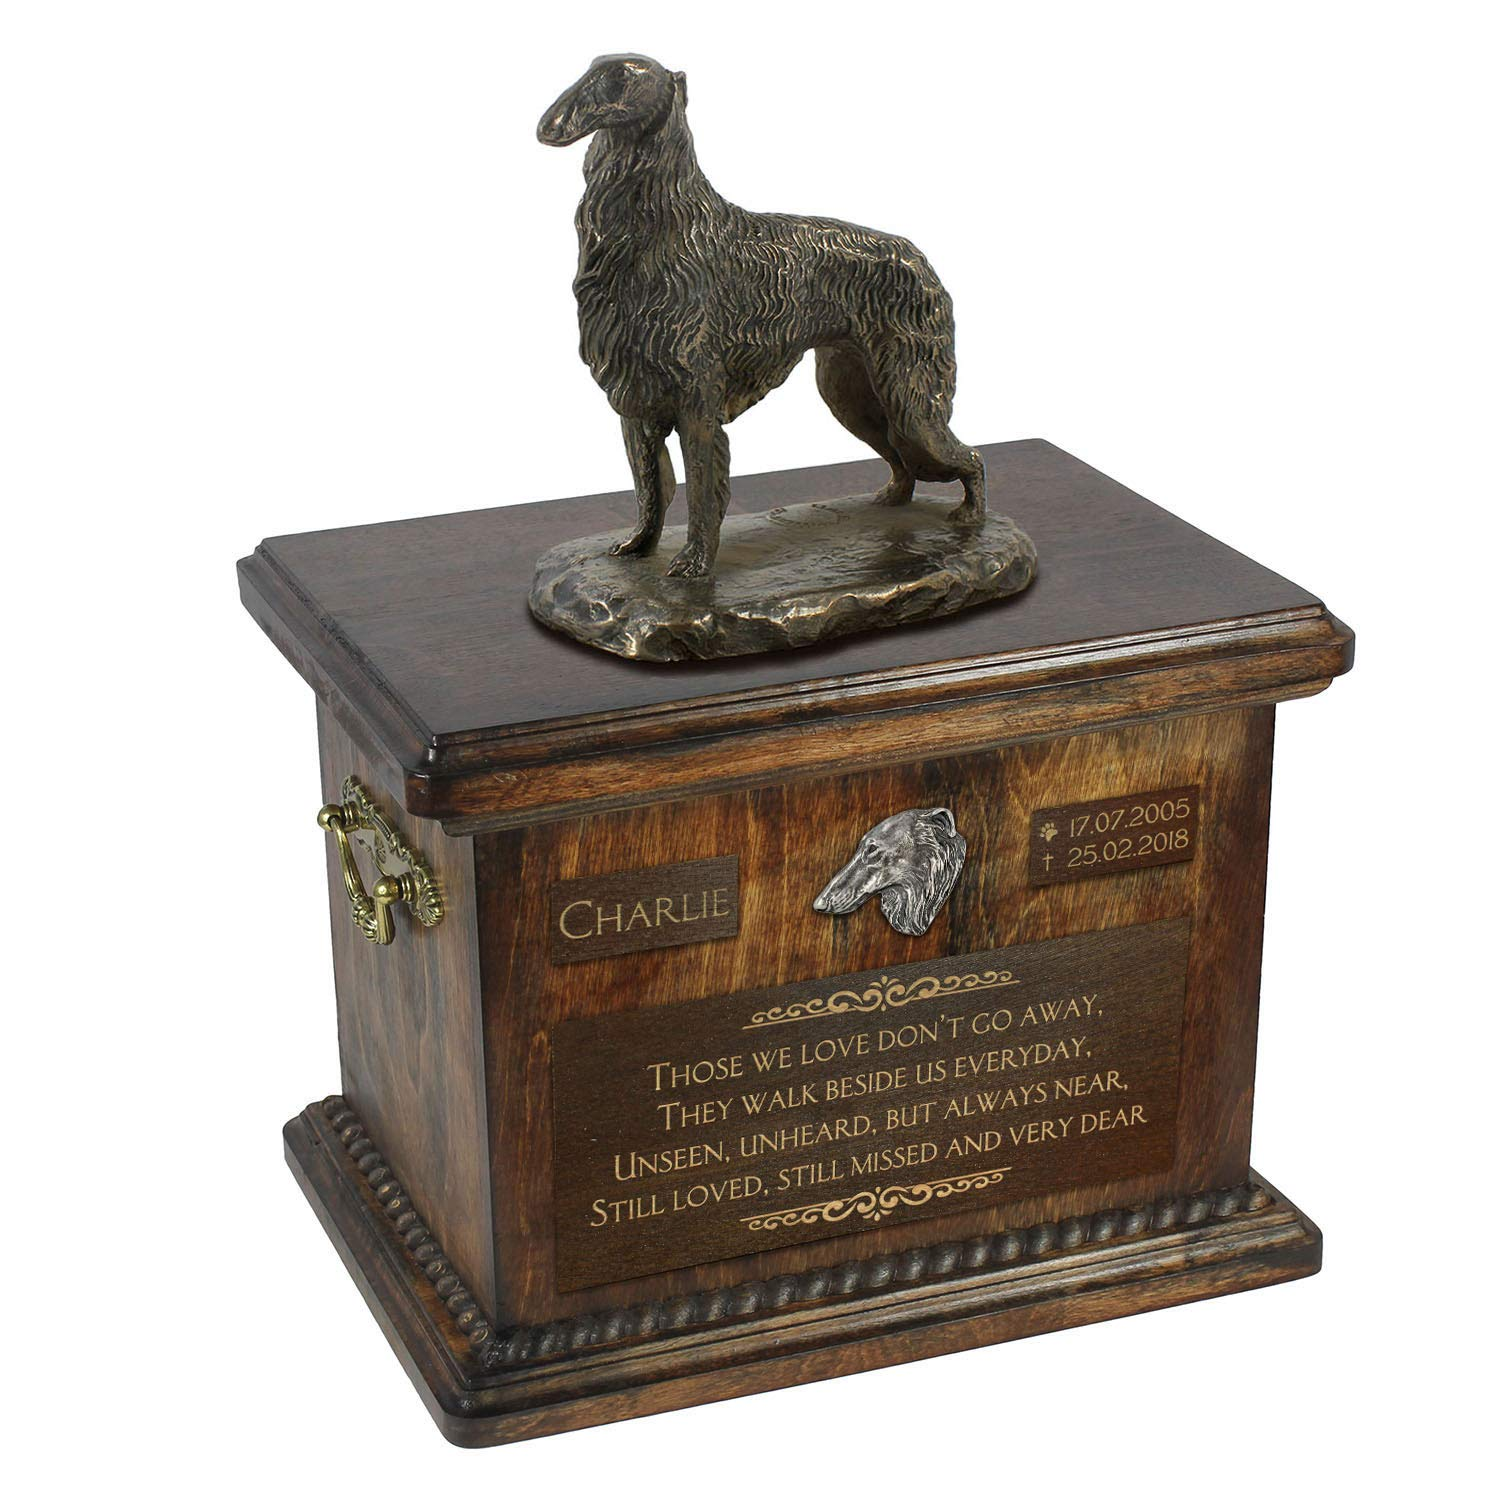 Borzoi standing, Urn for Dog Ashes Memorial with Statue, Pet's Name and Quote ArtDog Personalized